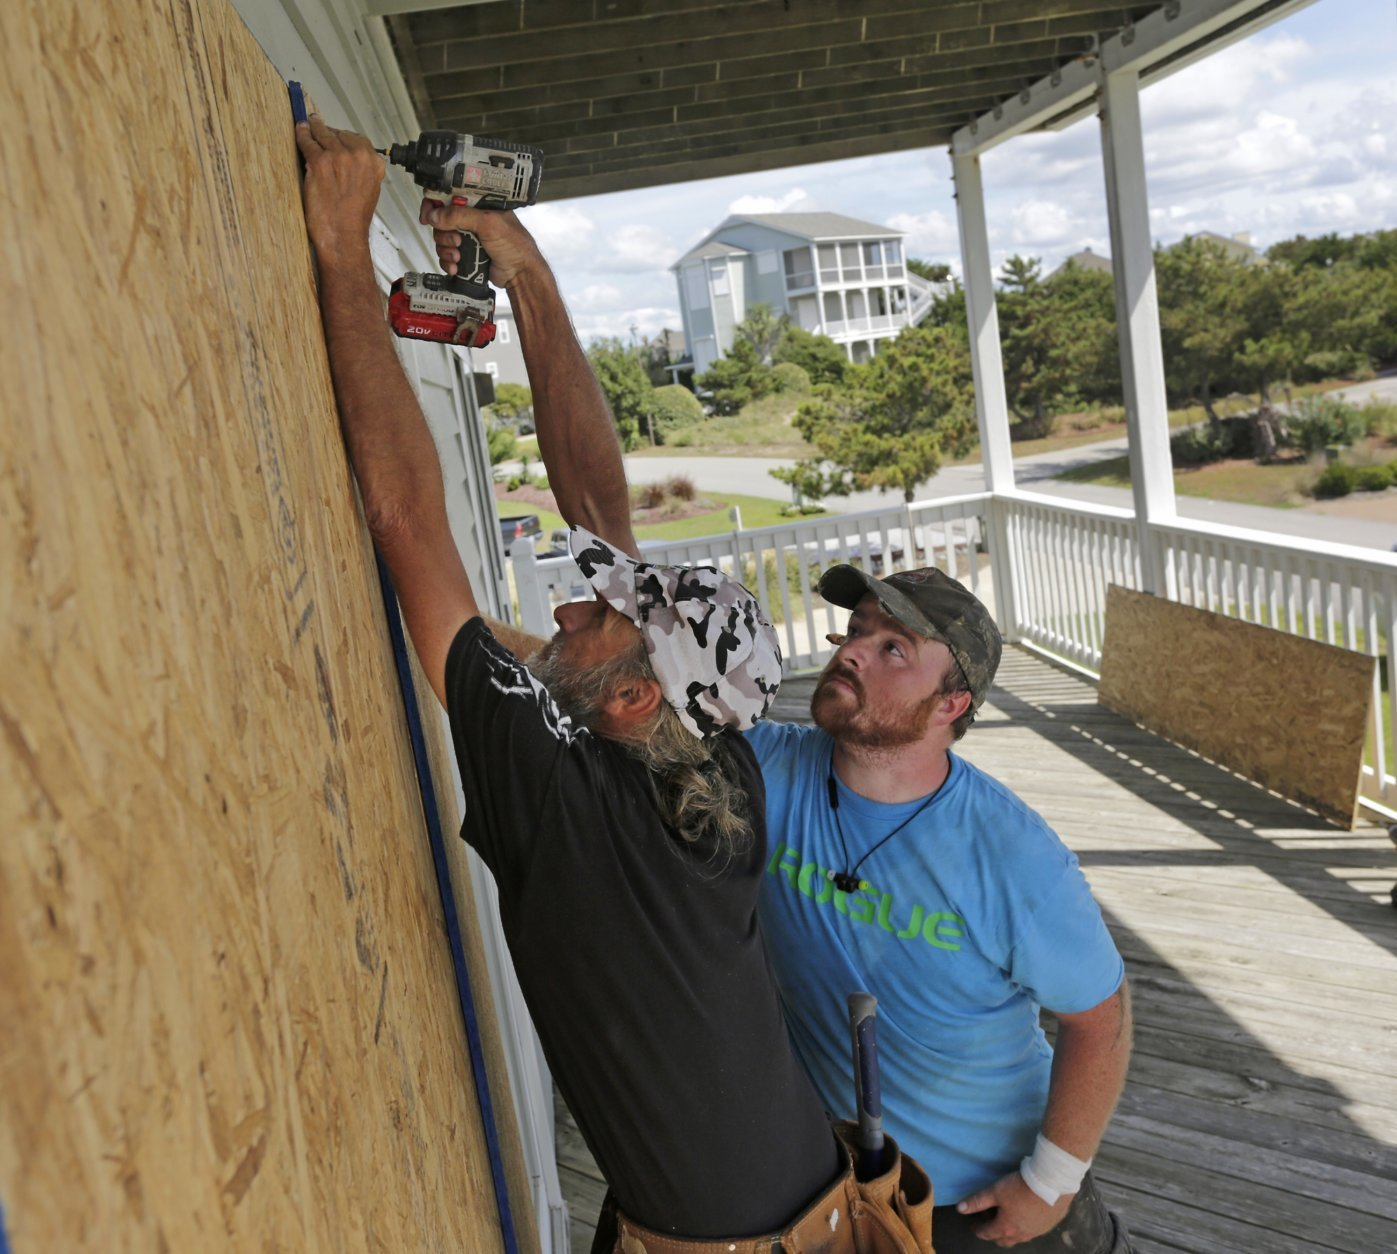 FILE - In this Wednesday, Sept. 12, 2018 file photo, Joe Gore, left, and Joshua Adcock prepare for Hurricane Florence as they board up windows on a home in Emerald Isle N.C. Before and after a hurricane, Ace is the place. And Home Depot, Lowe's, and many other hardware and building supply outlets. Not surprisingly, these companies plan for storms such as Hurricane Florence all year.  (AP Photo/Tom Copeland, File)